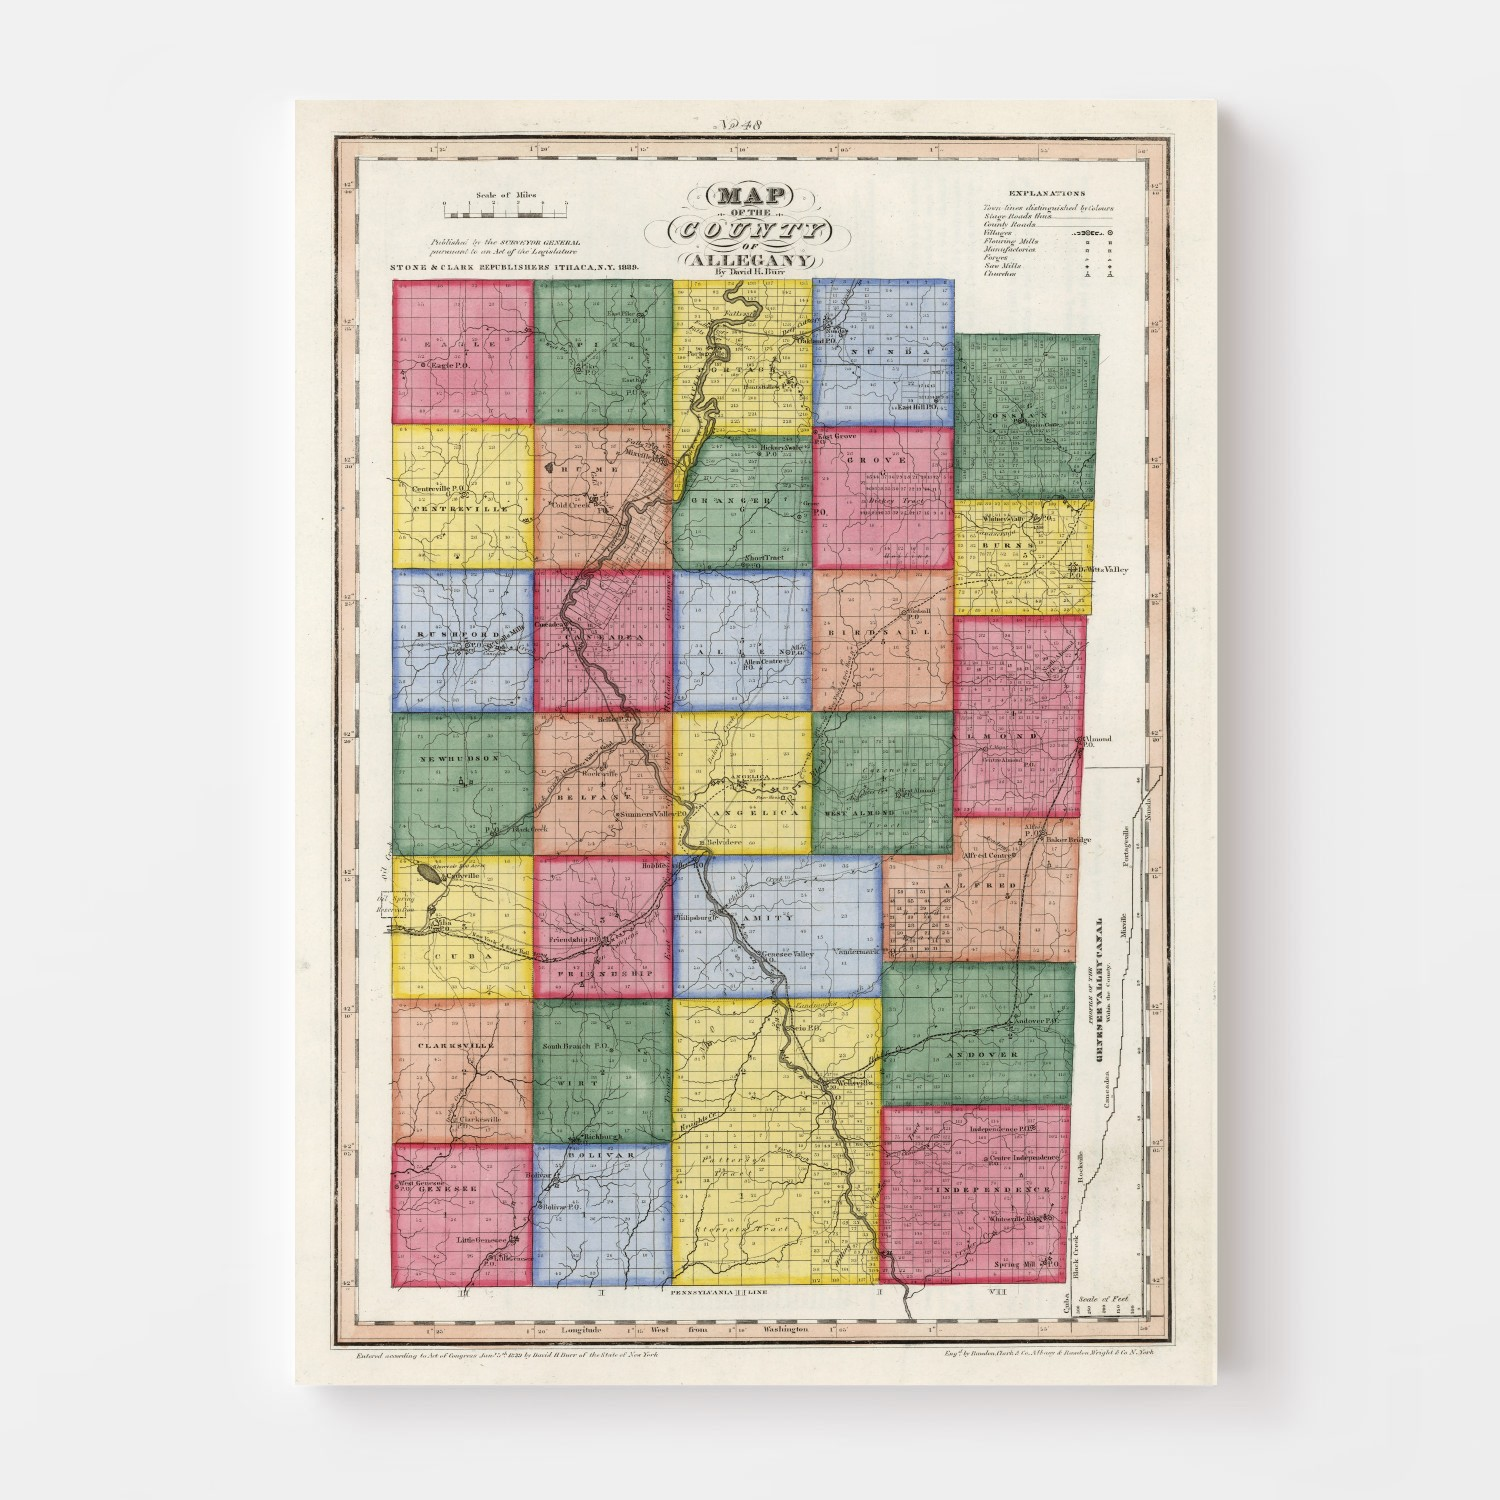 Vintage Map of Allegany County New York, 1840